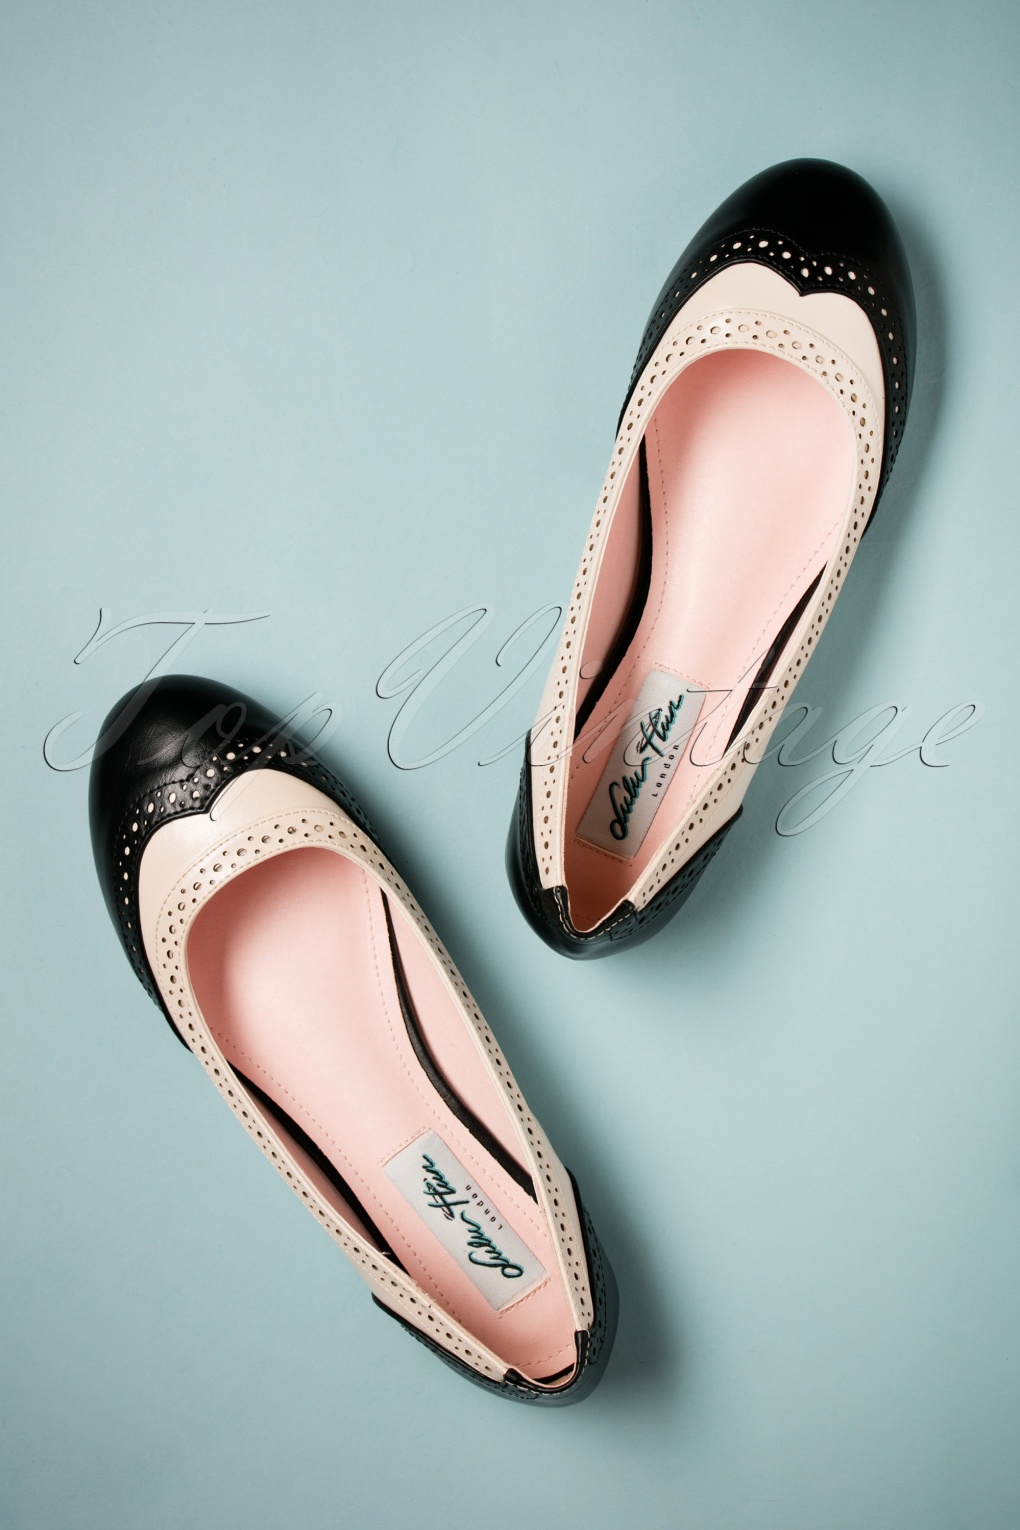 Retro Vintage Flats and Low Heel Shoes 60s Linda Flats in Black and White £34.11 AT vintagedancer.com